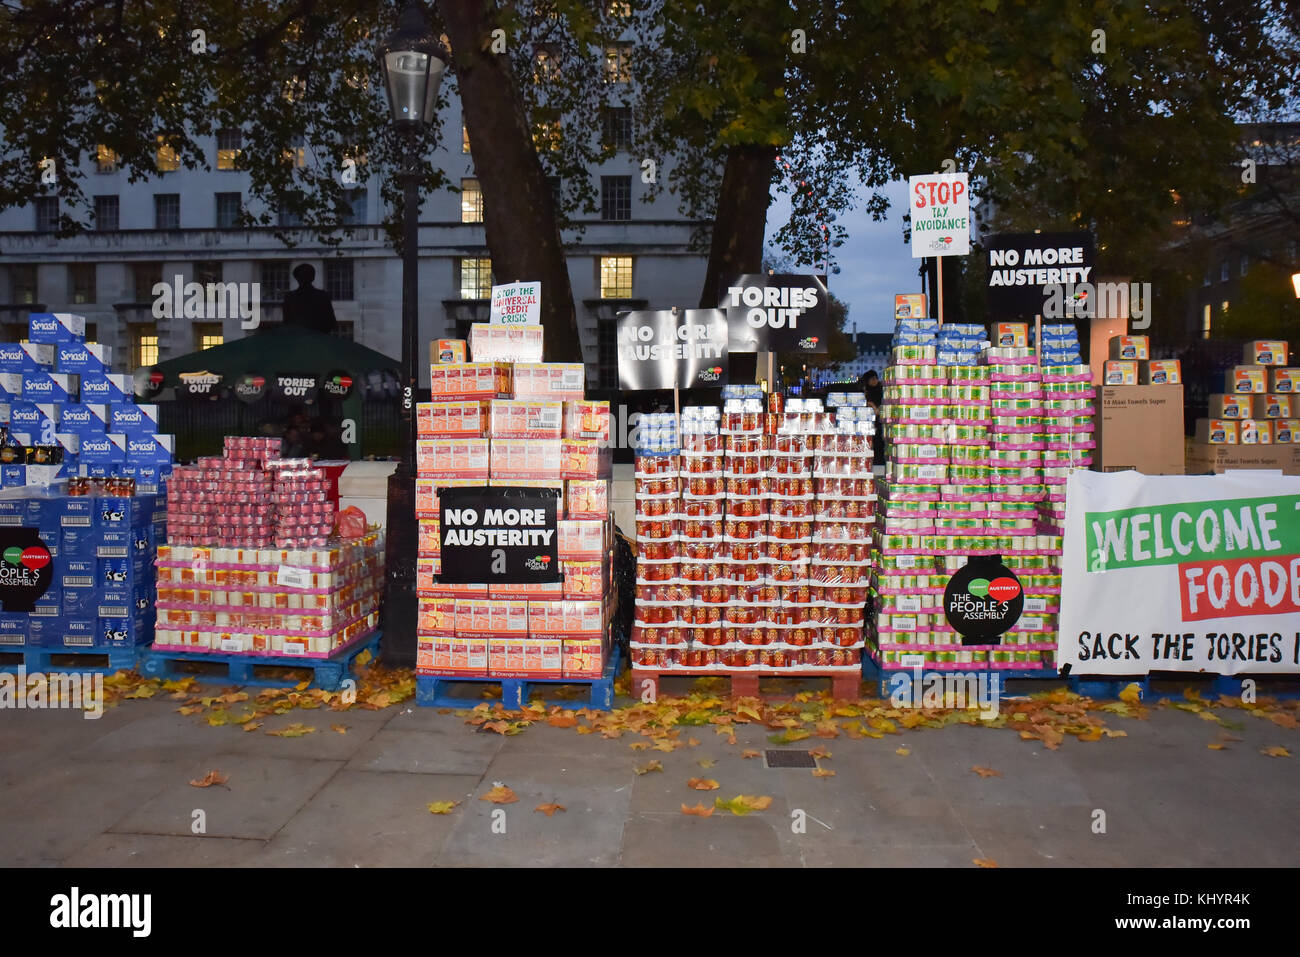 Whitehall, London, UK. 21st Nov, 2017. The People's Assembly anti austerity, budget day protest opposite Downing Stock Photo